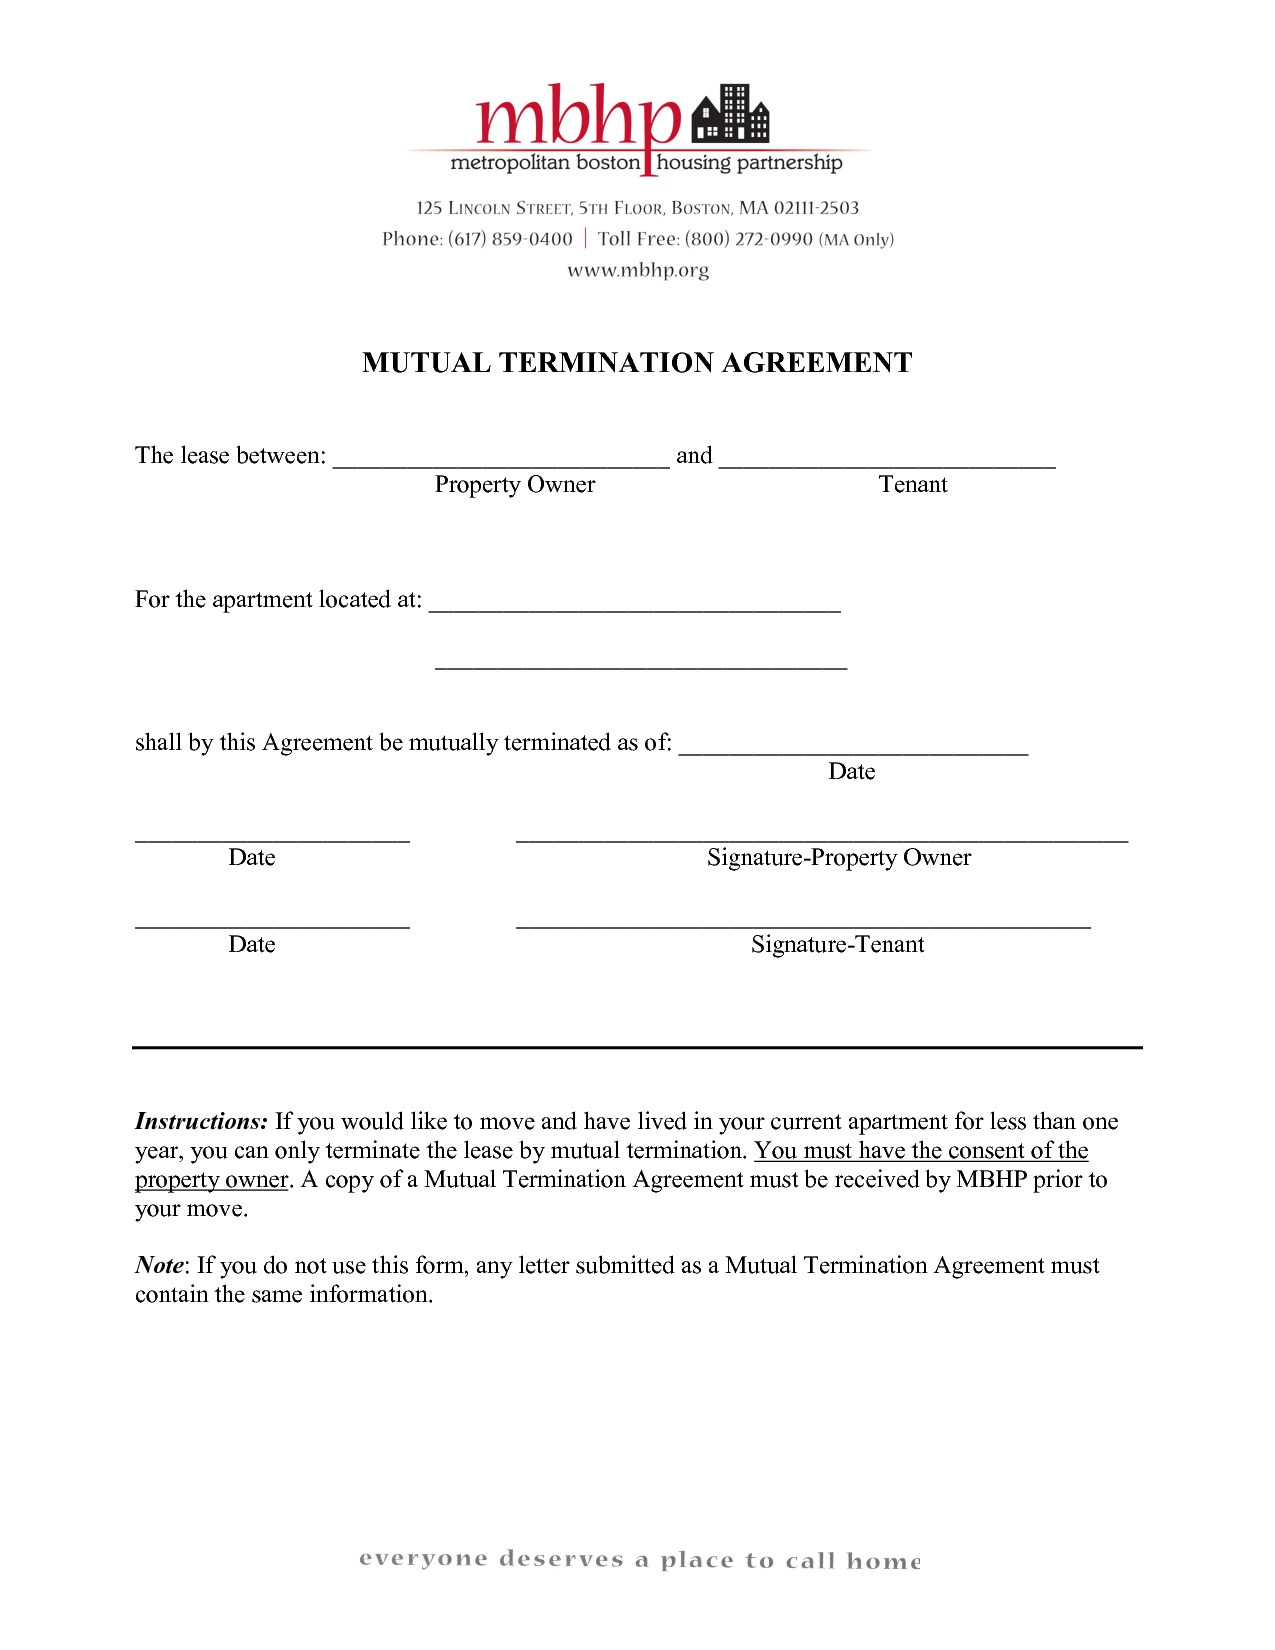 Agreement Form Mutual Termination Letter And Employment  Home